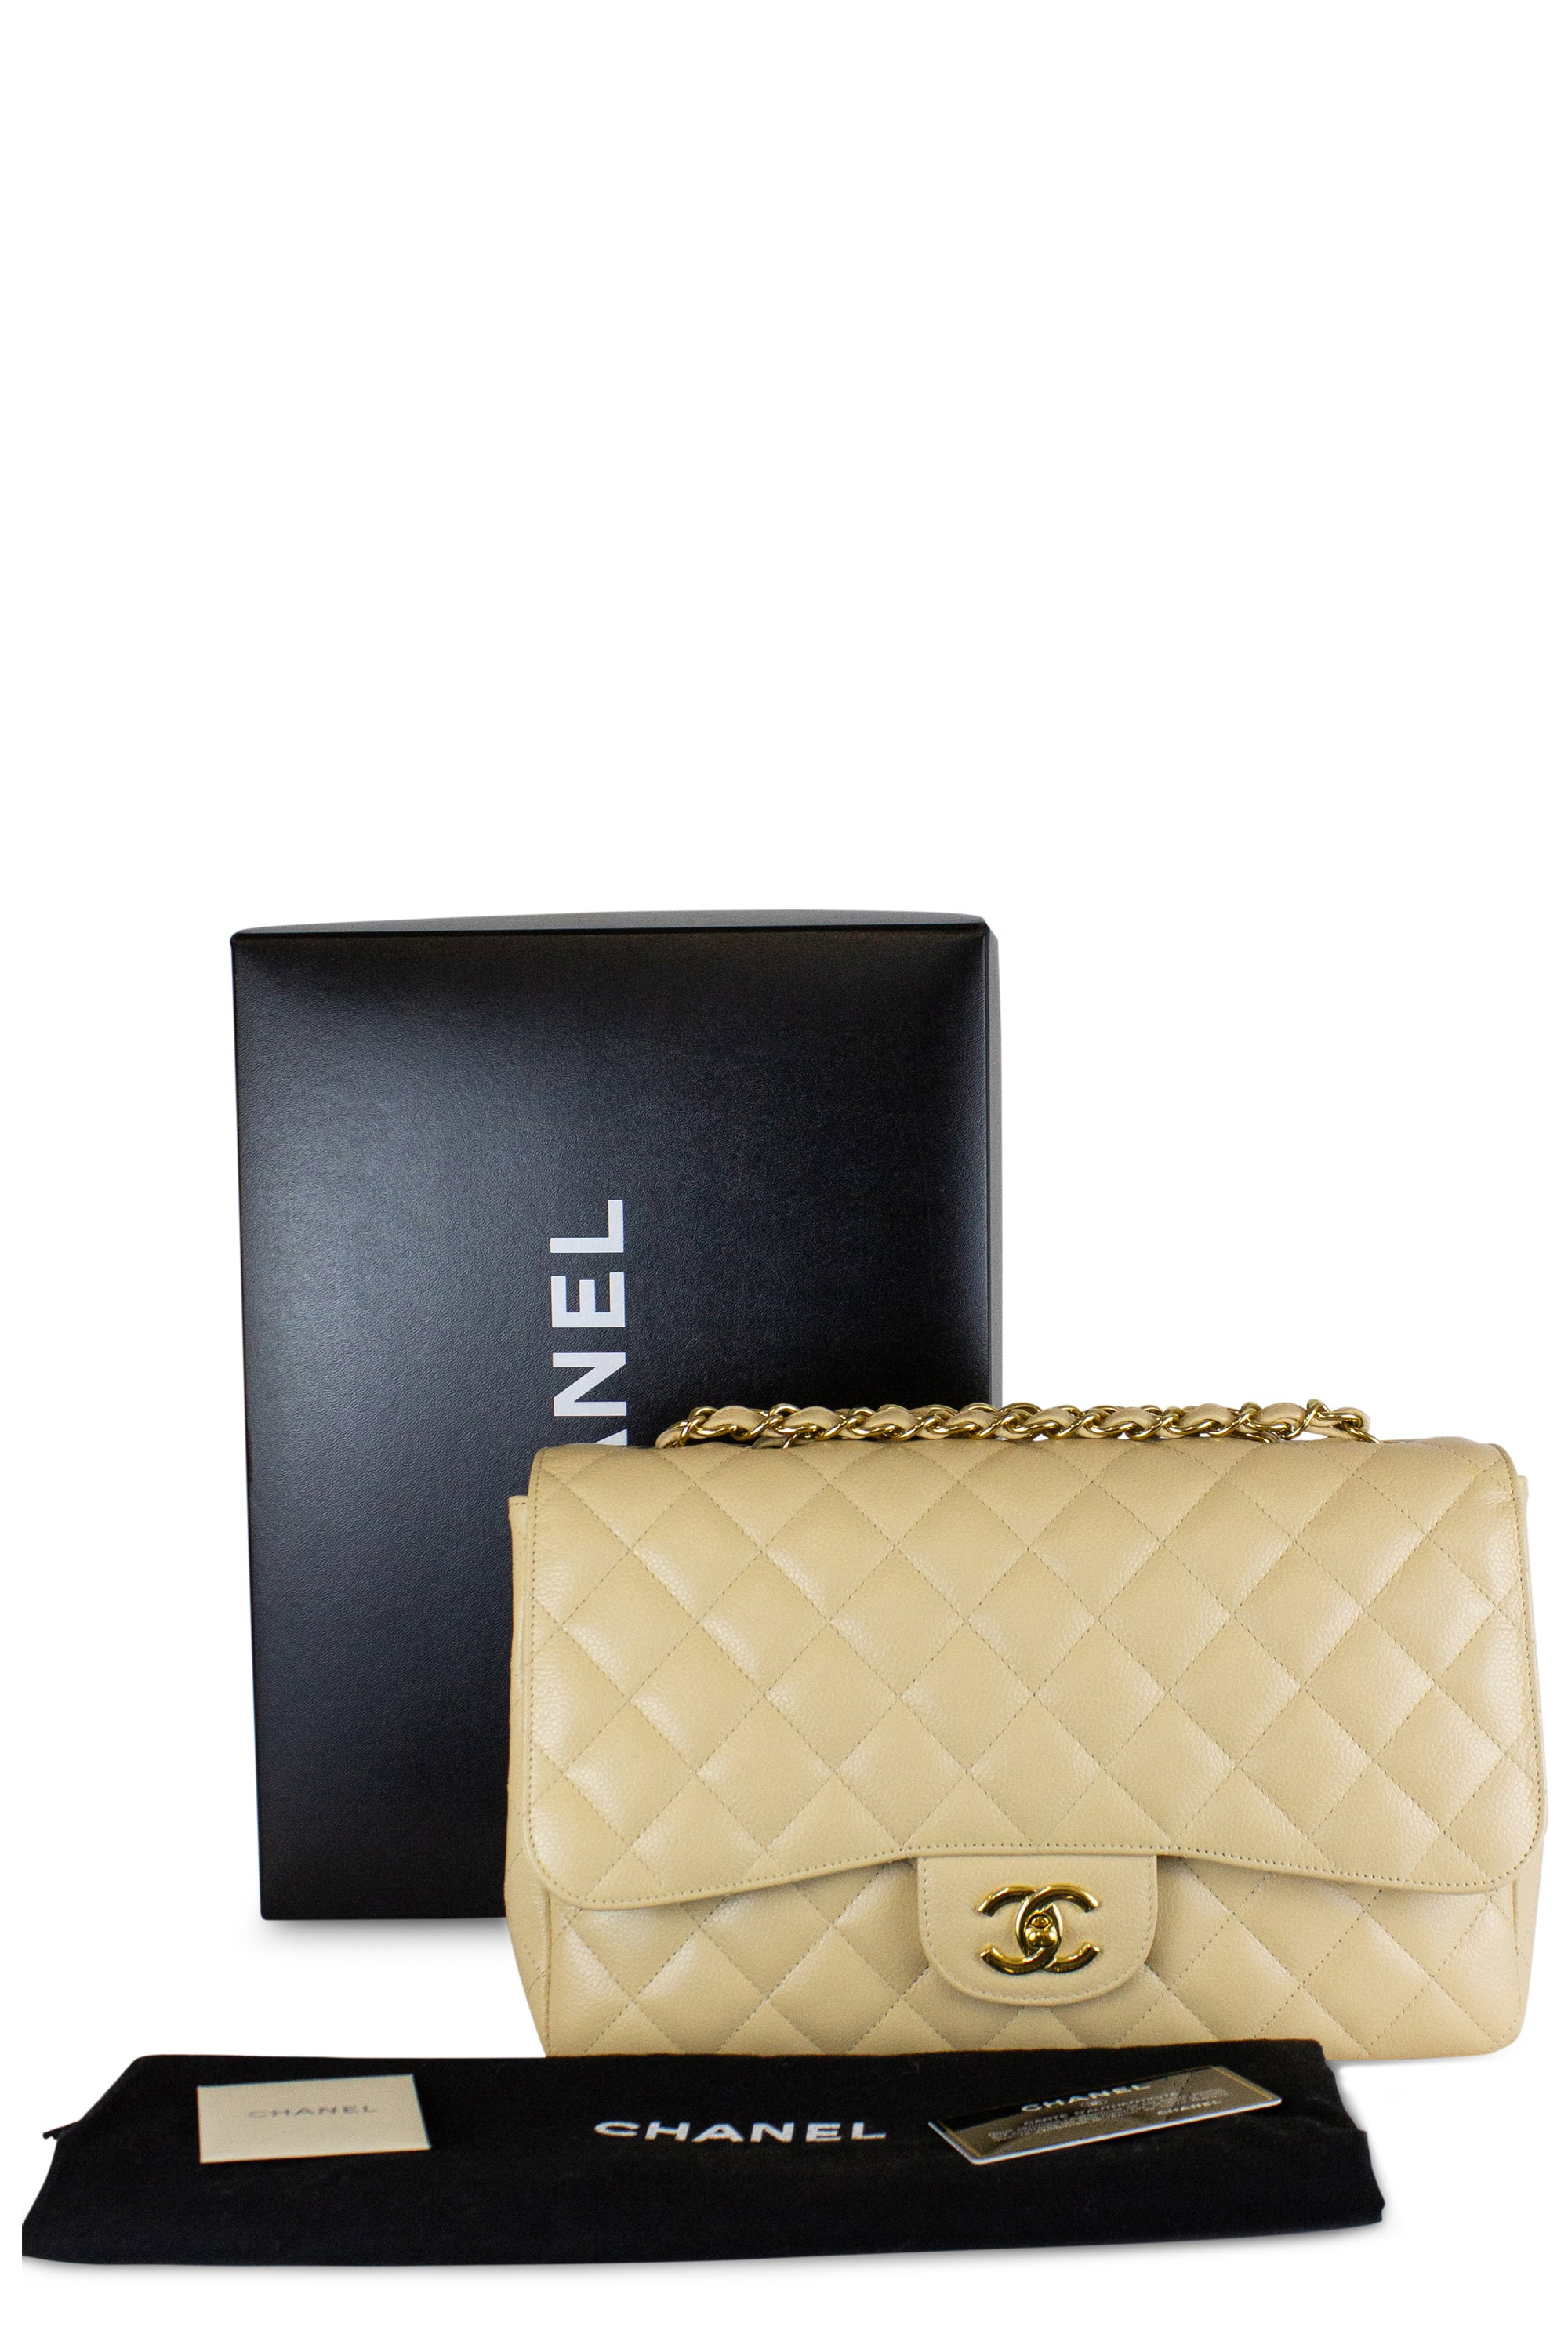 Chanel Jumbo Caviar Leather One Flap Bag Beige Gold Hardware